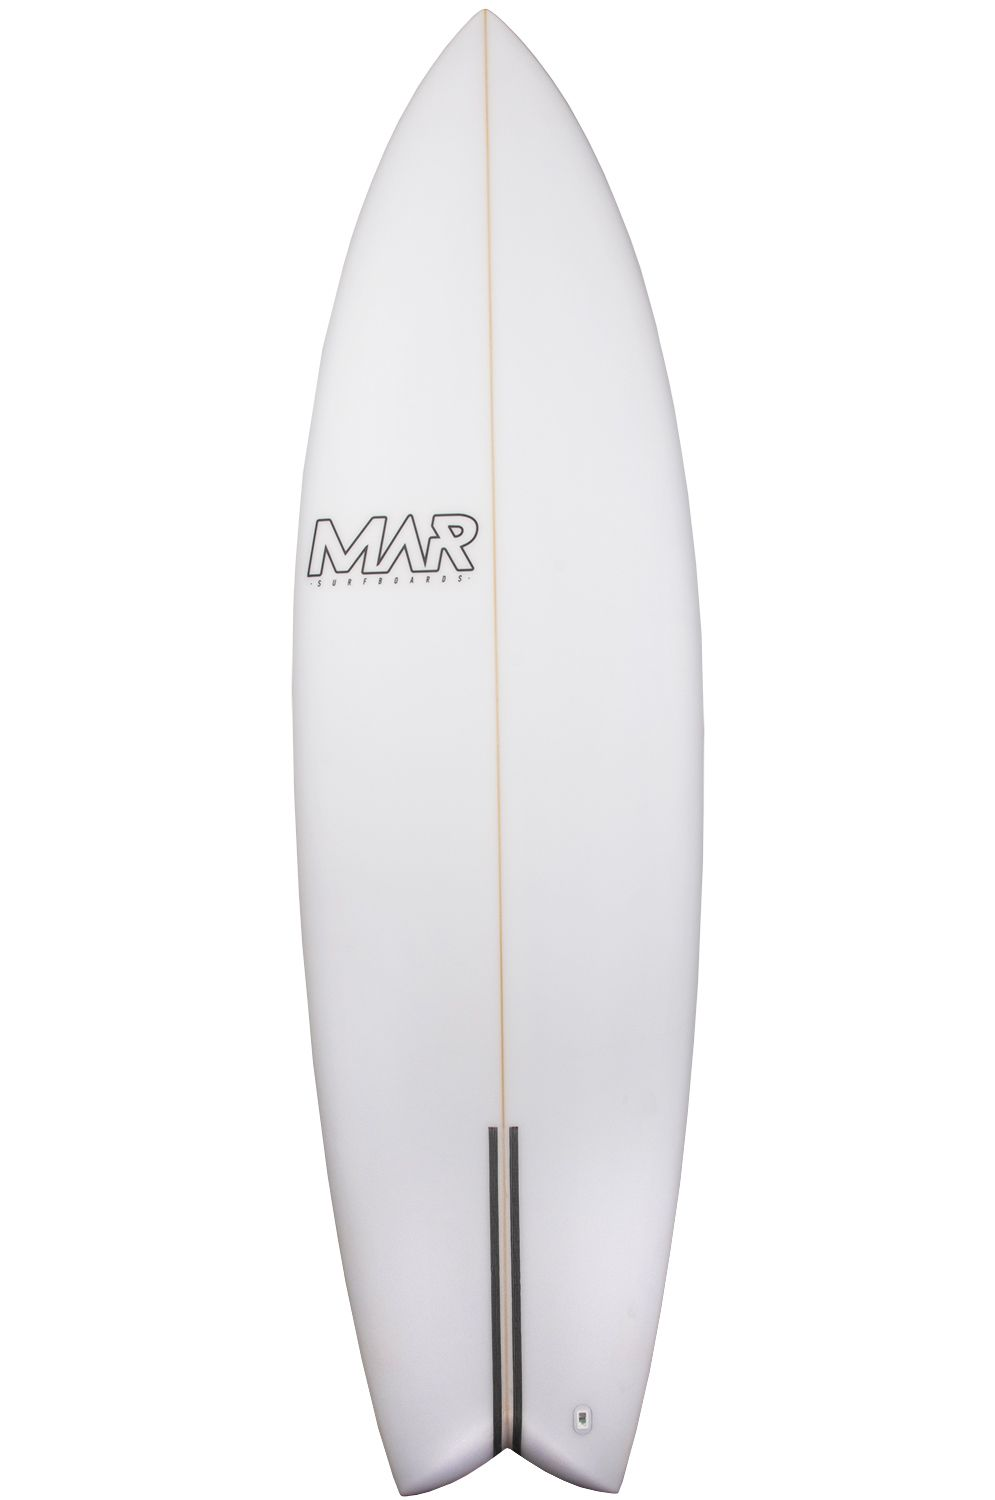 Mar Surf Board 6'2 THE 4 PU Fish Tail - White FCS II Multisystem 6ft2